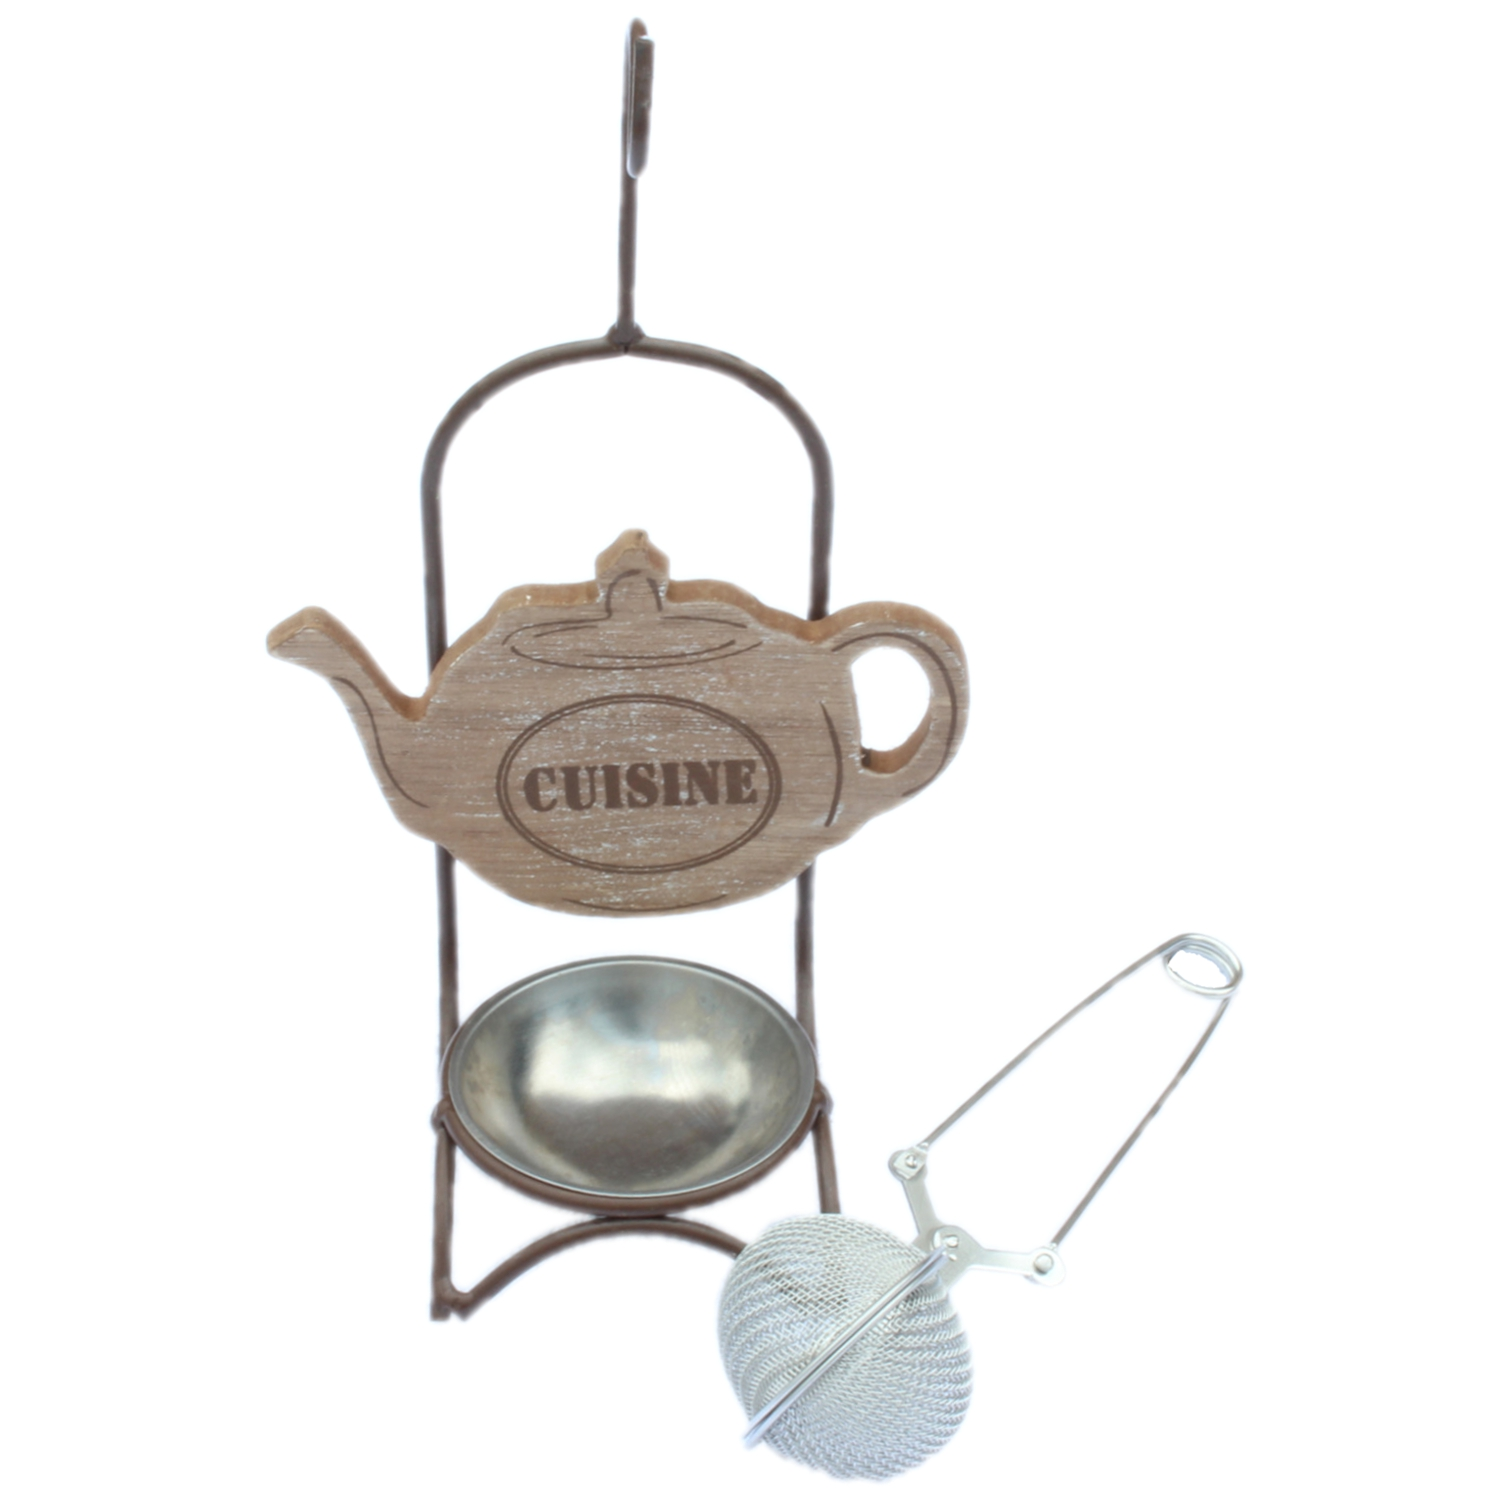 vintage shabby french chic cuisine style tea strainer. Black Bedroom Furniture Sets. Home Design Ideas